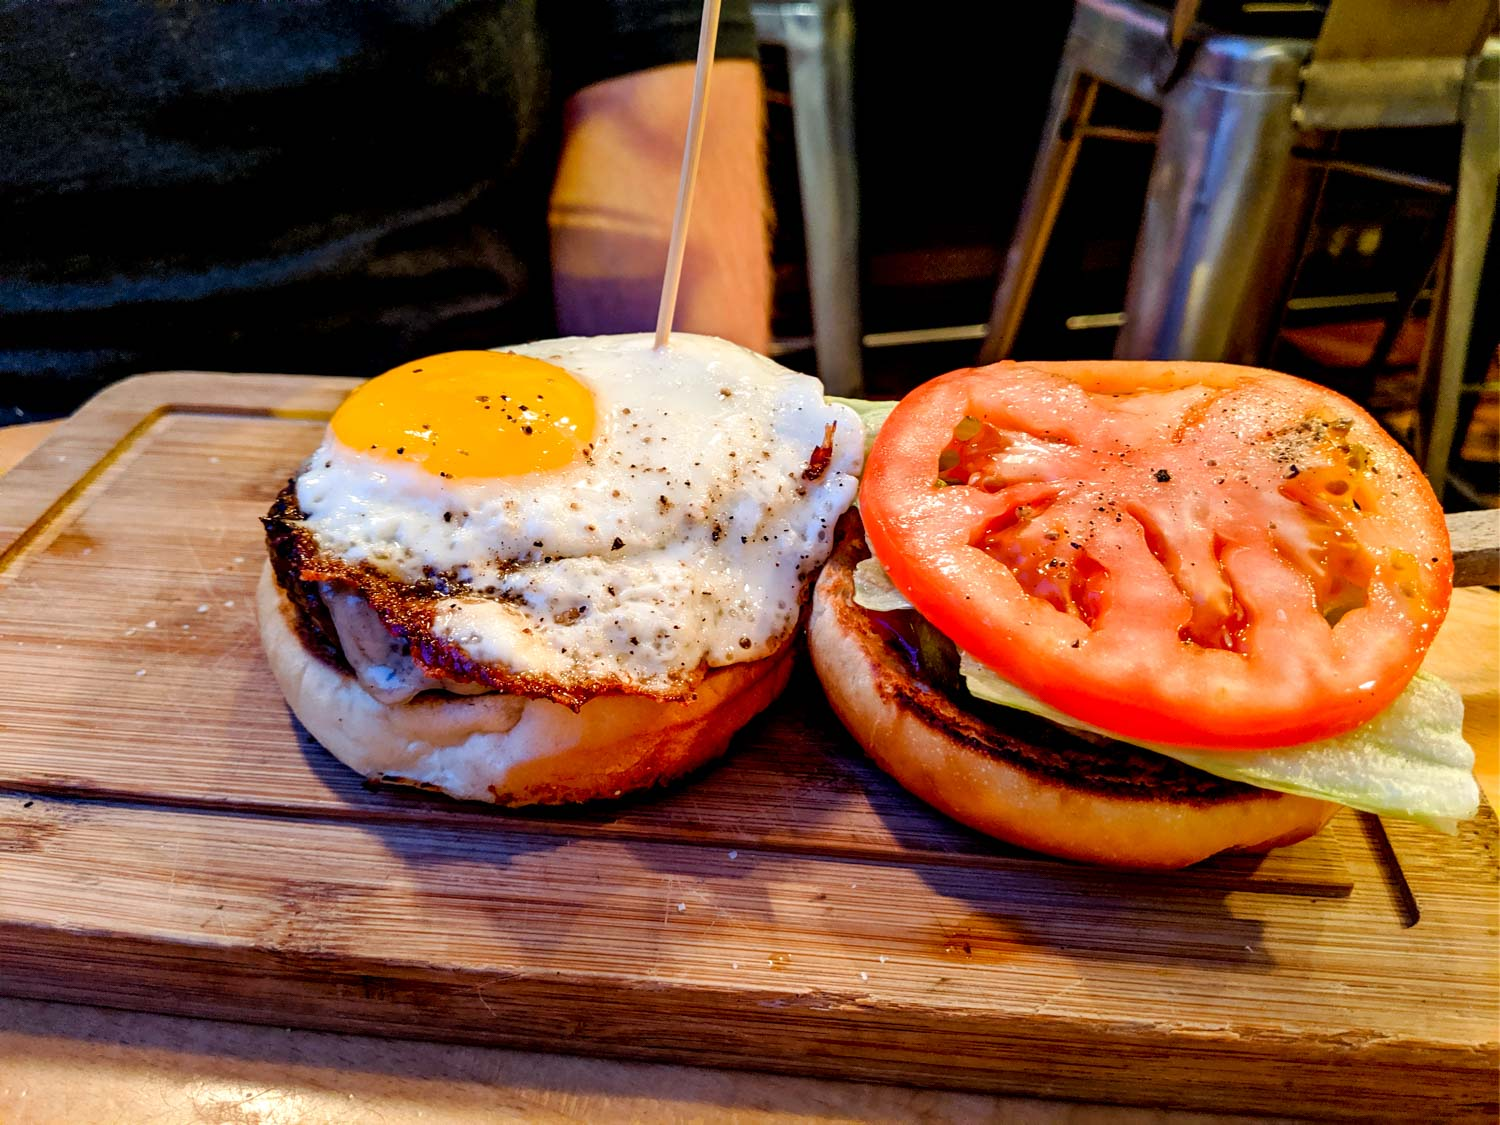 The butcher and burger with an egg, lettuce, tomato on a beef patty.